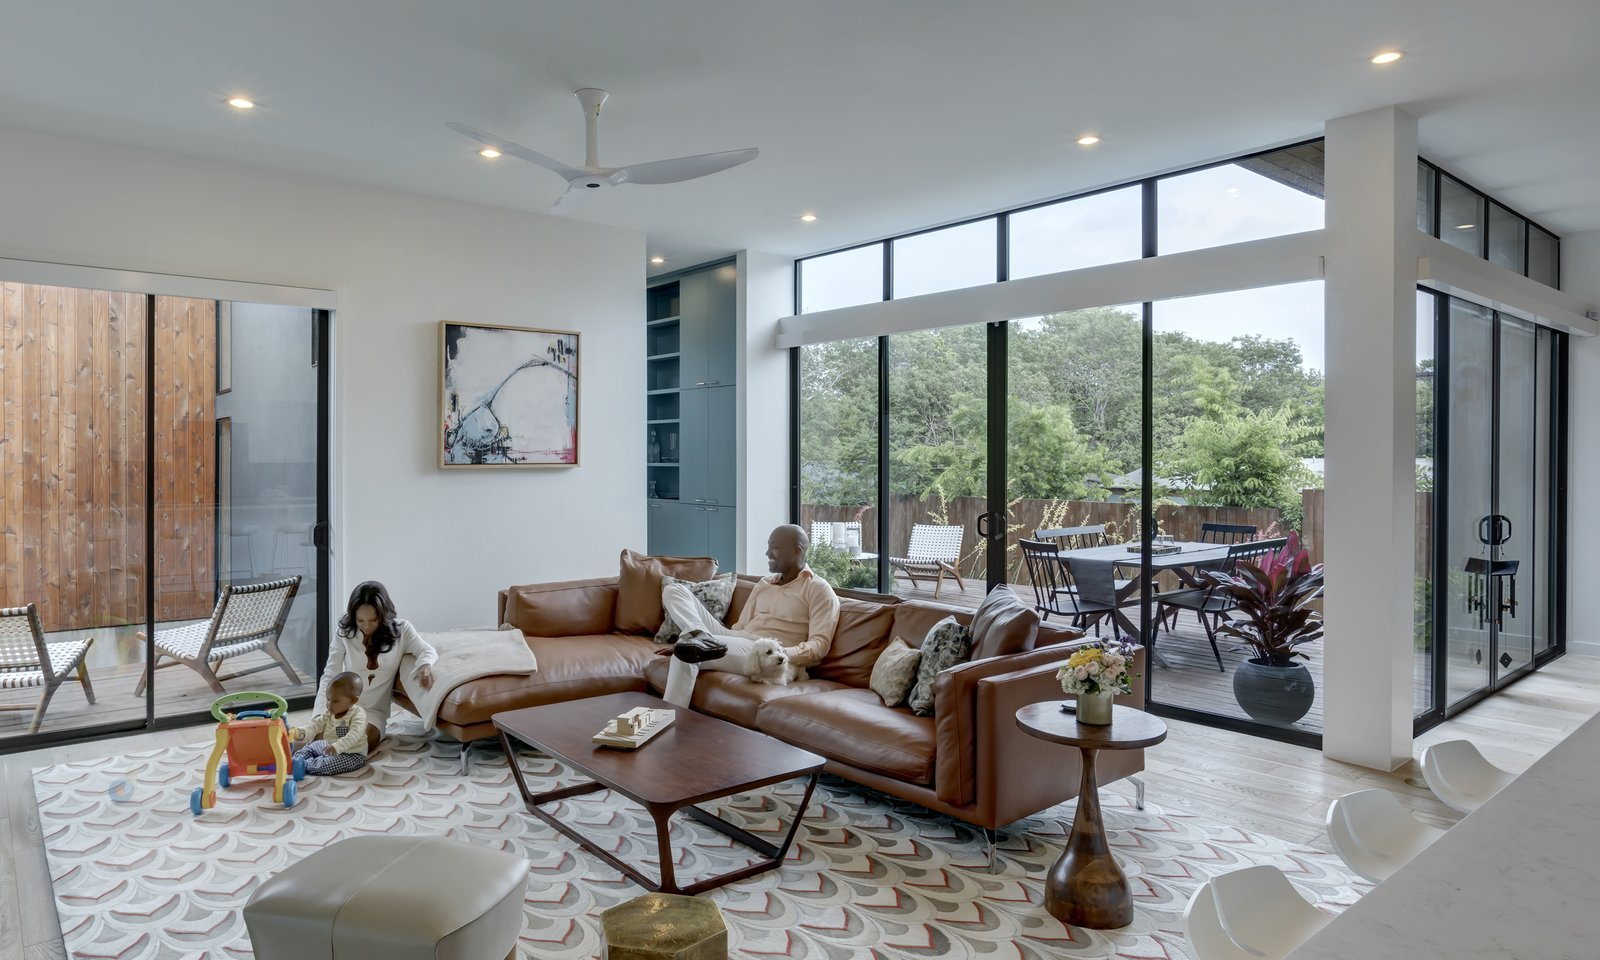 Living, Storage, Sectional, End Tables, Coffee Tables, Rug, Sofa, Shelves, Light Hardwood, Recessed, and Chair Add/Subtract House by Matt Fajkus Architecture   Photo by Charles Davis Smith  Living Sectional Storage Photos from Add/Subtract House